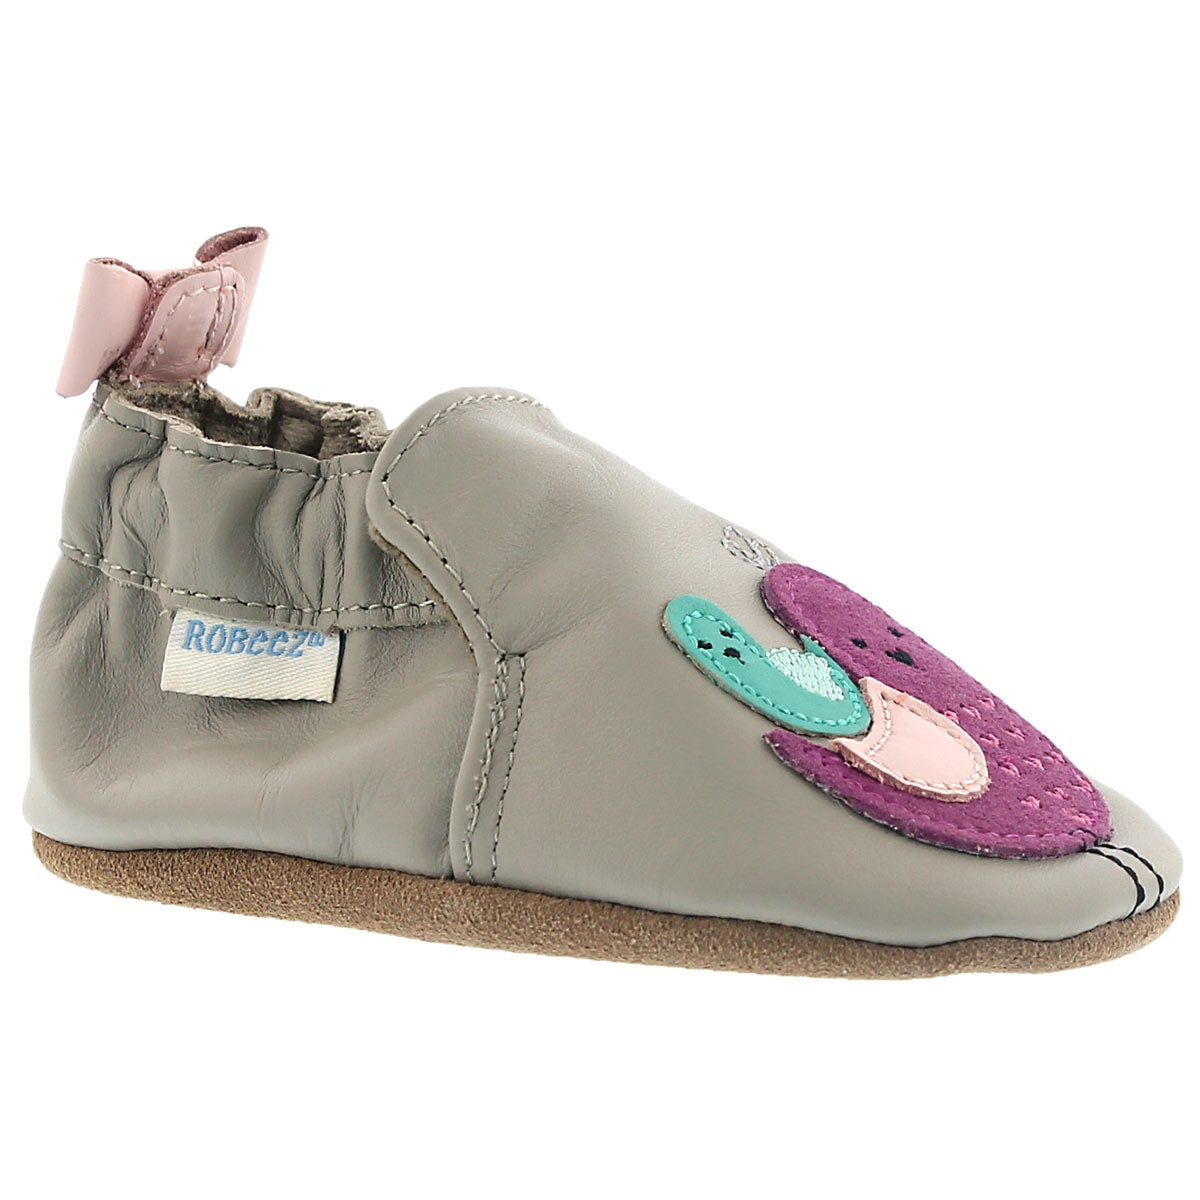 Infants' PEACEFUL PARTRIDGE grey slippers